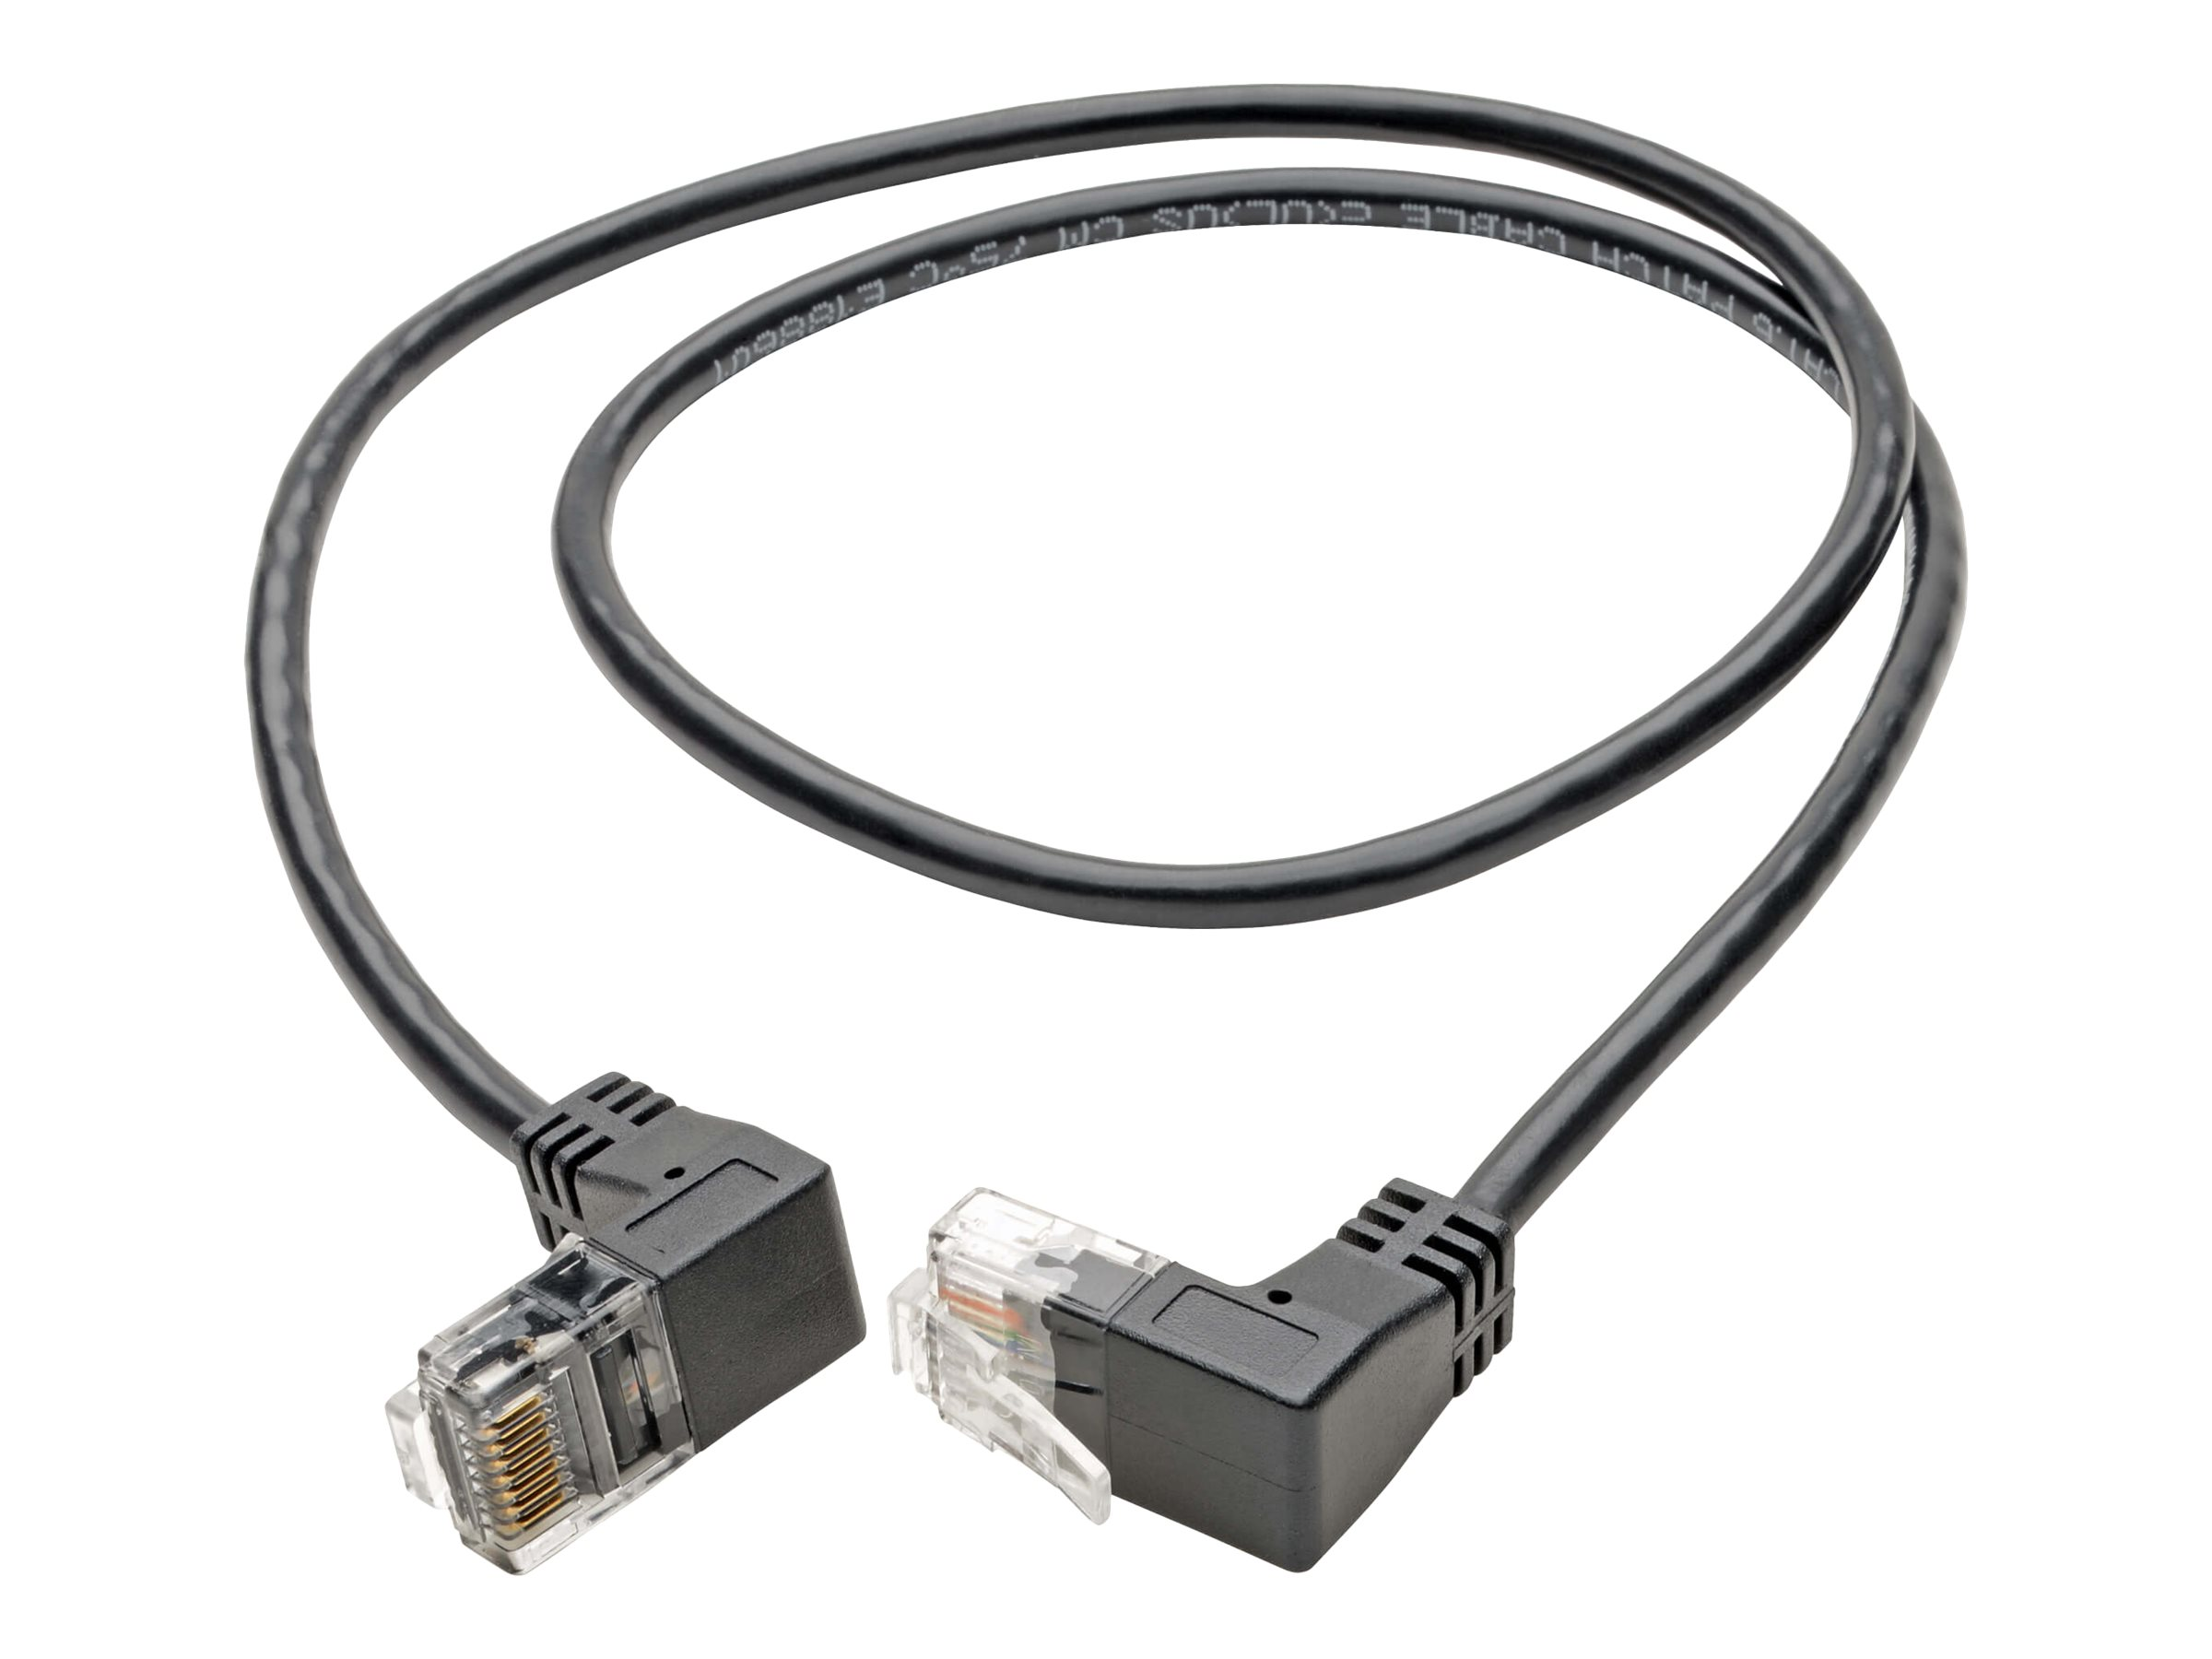 Tripp Lite Cat6 Gigabit Patch Cable Snagless Right-Angle UTP Slim Black 2ft - patch cable - 61 cm - black